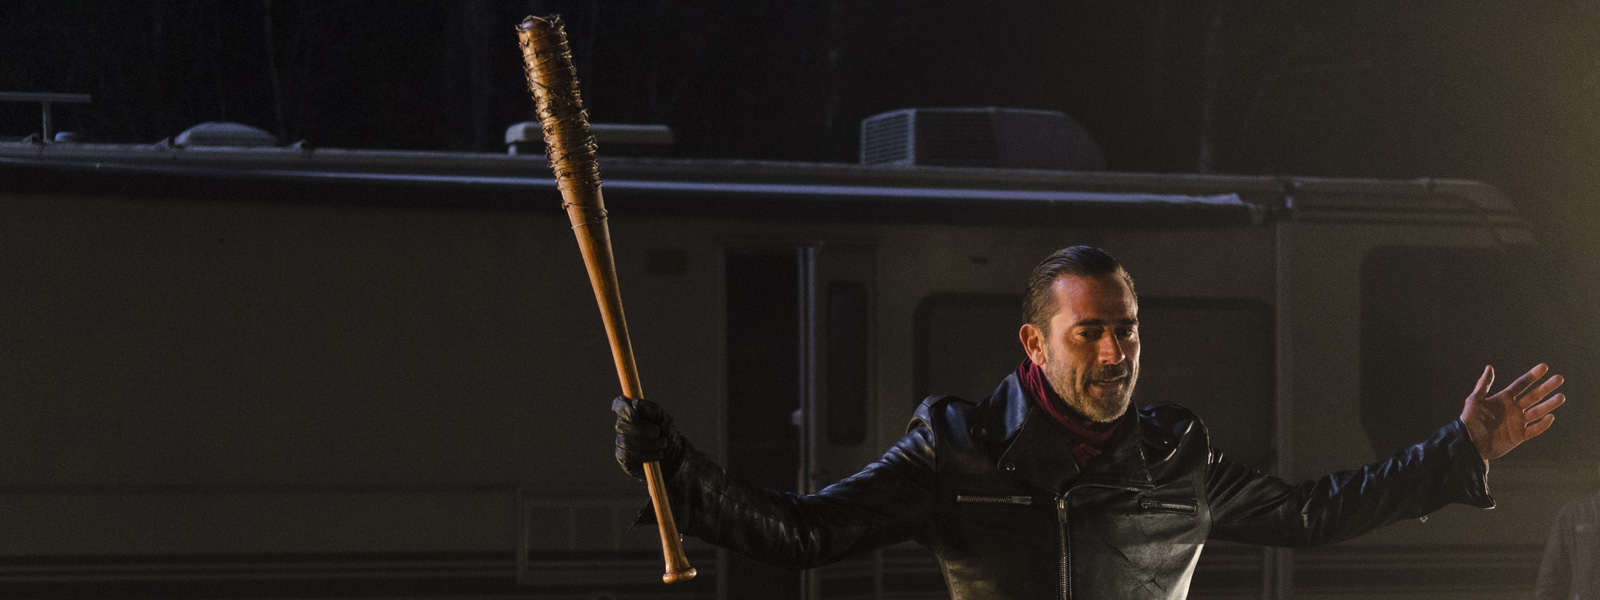 the-walking-dead-episode-616-negan-dean-morgan-800×600